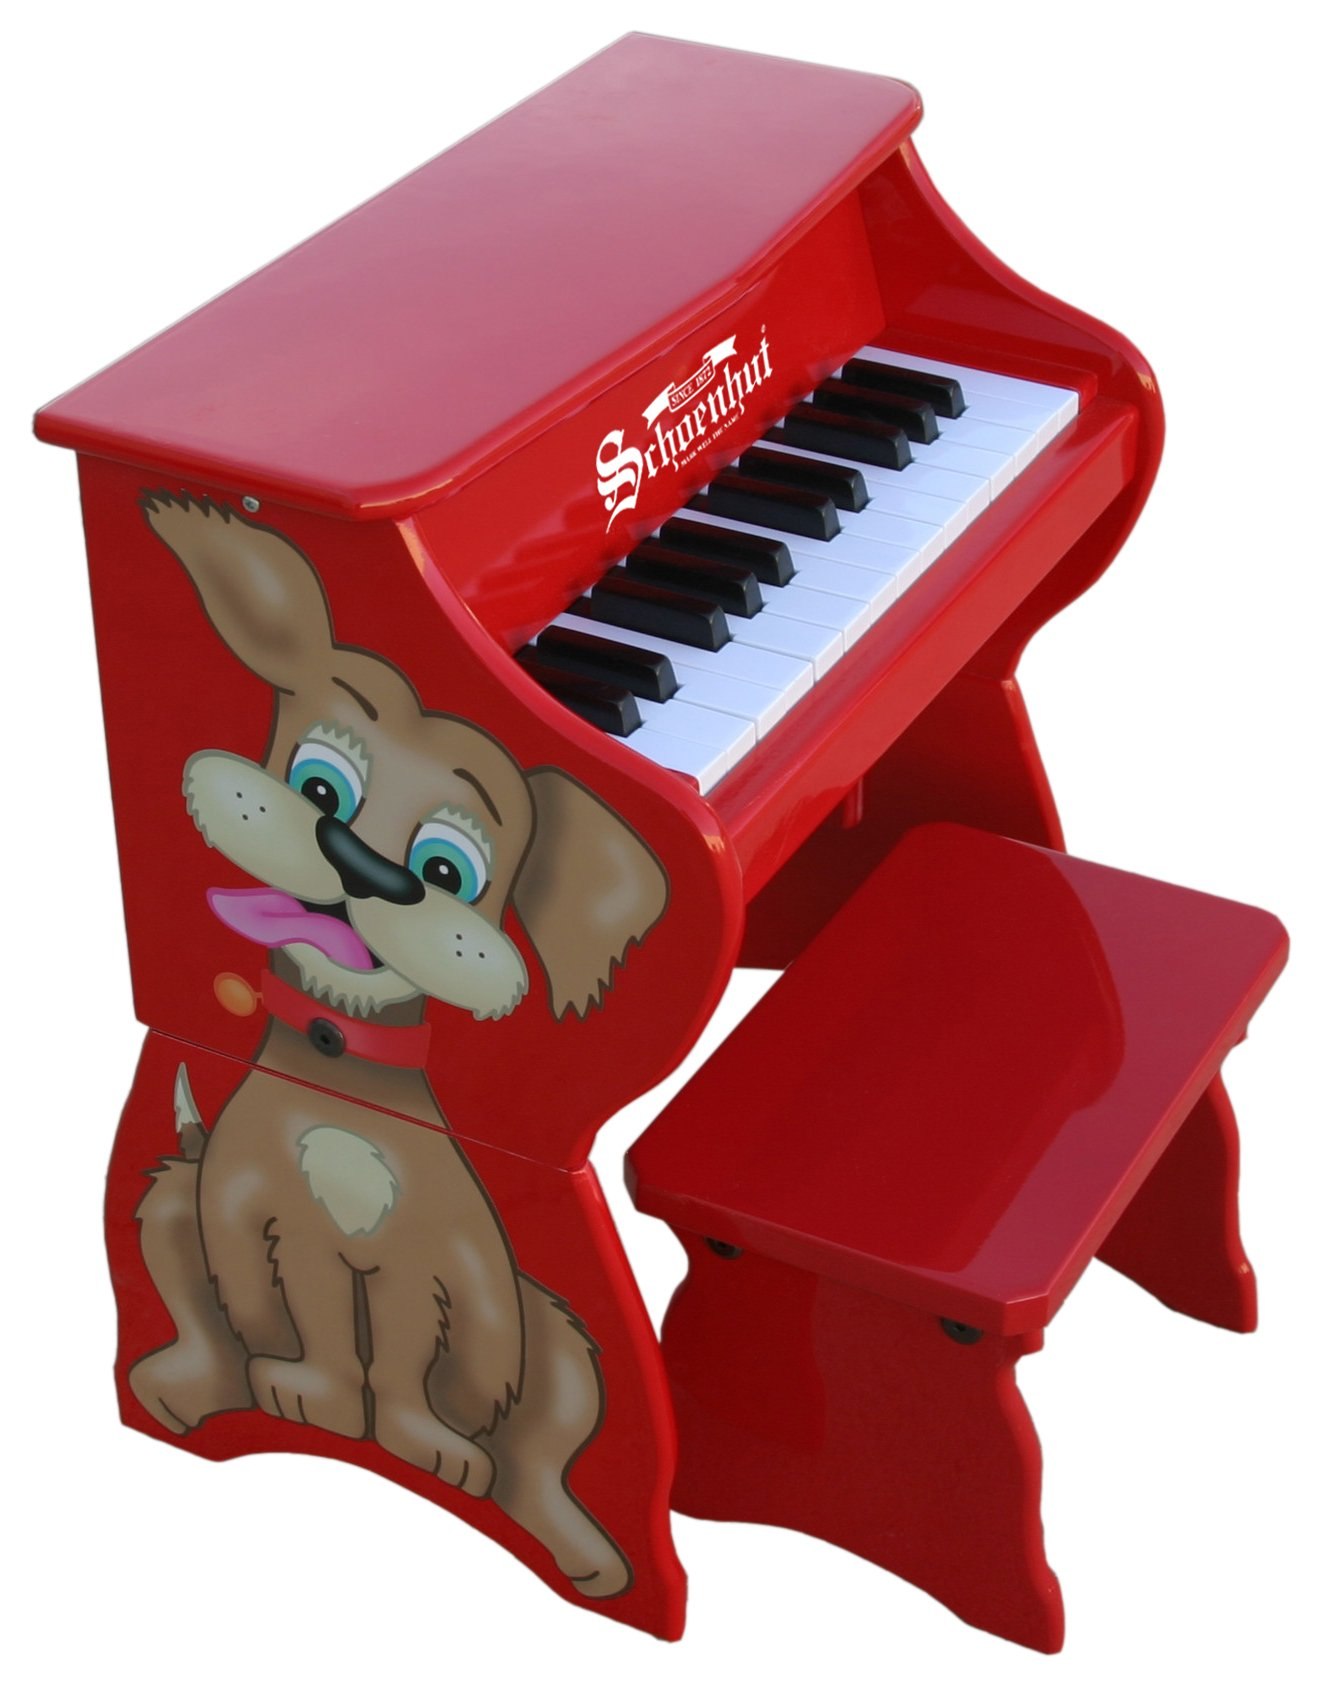 Schoenhut Learn-to-Play Toy Piano With 25-Keys and Patented Play-by-Color Tri-Play Learning System